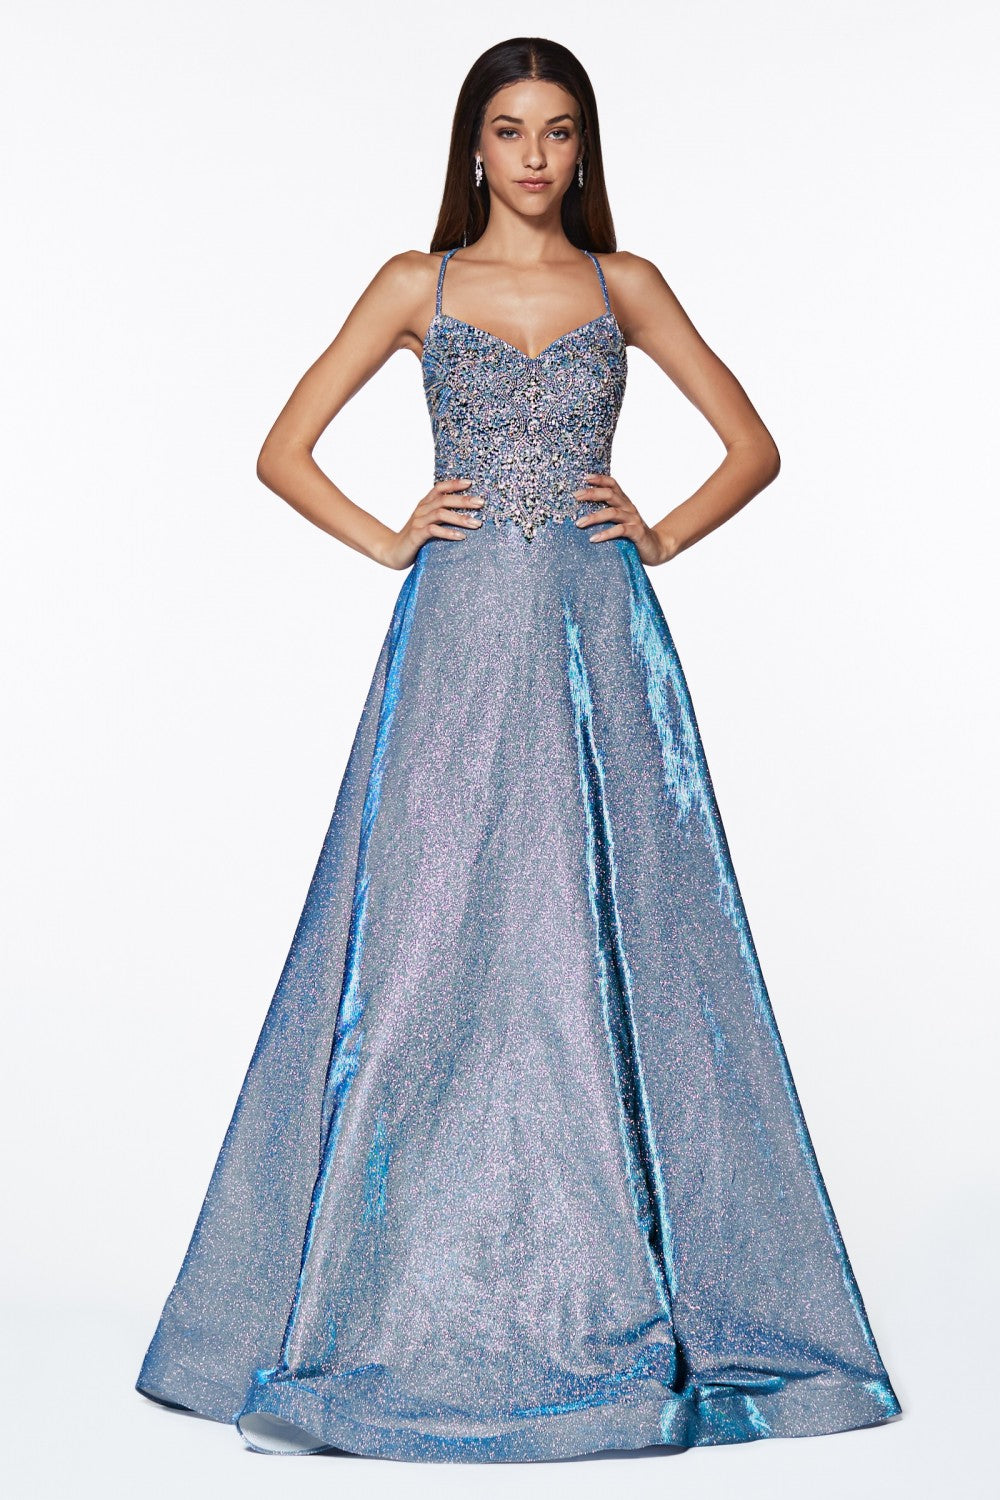 A-Line Glitter Gown With Beaded Top And Criss Cross Back